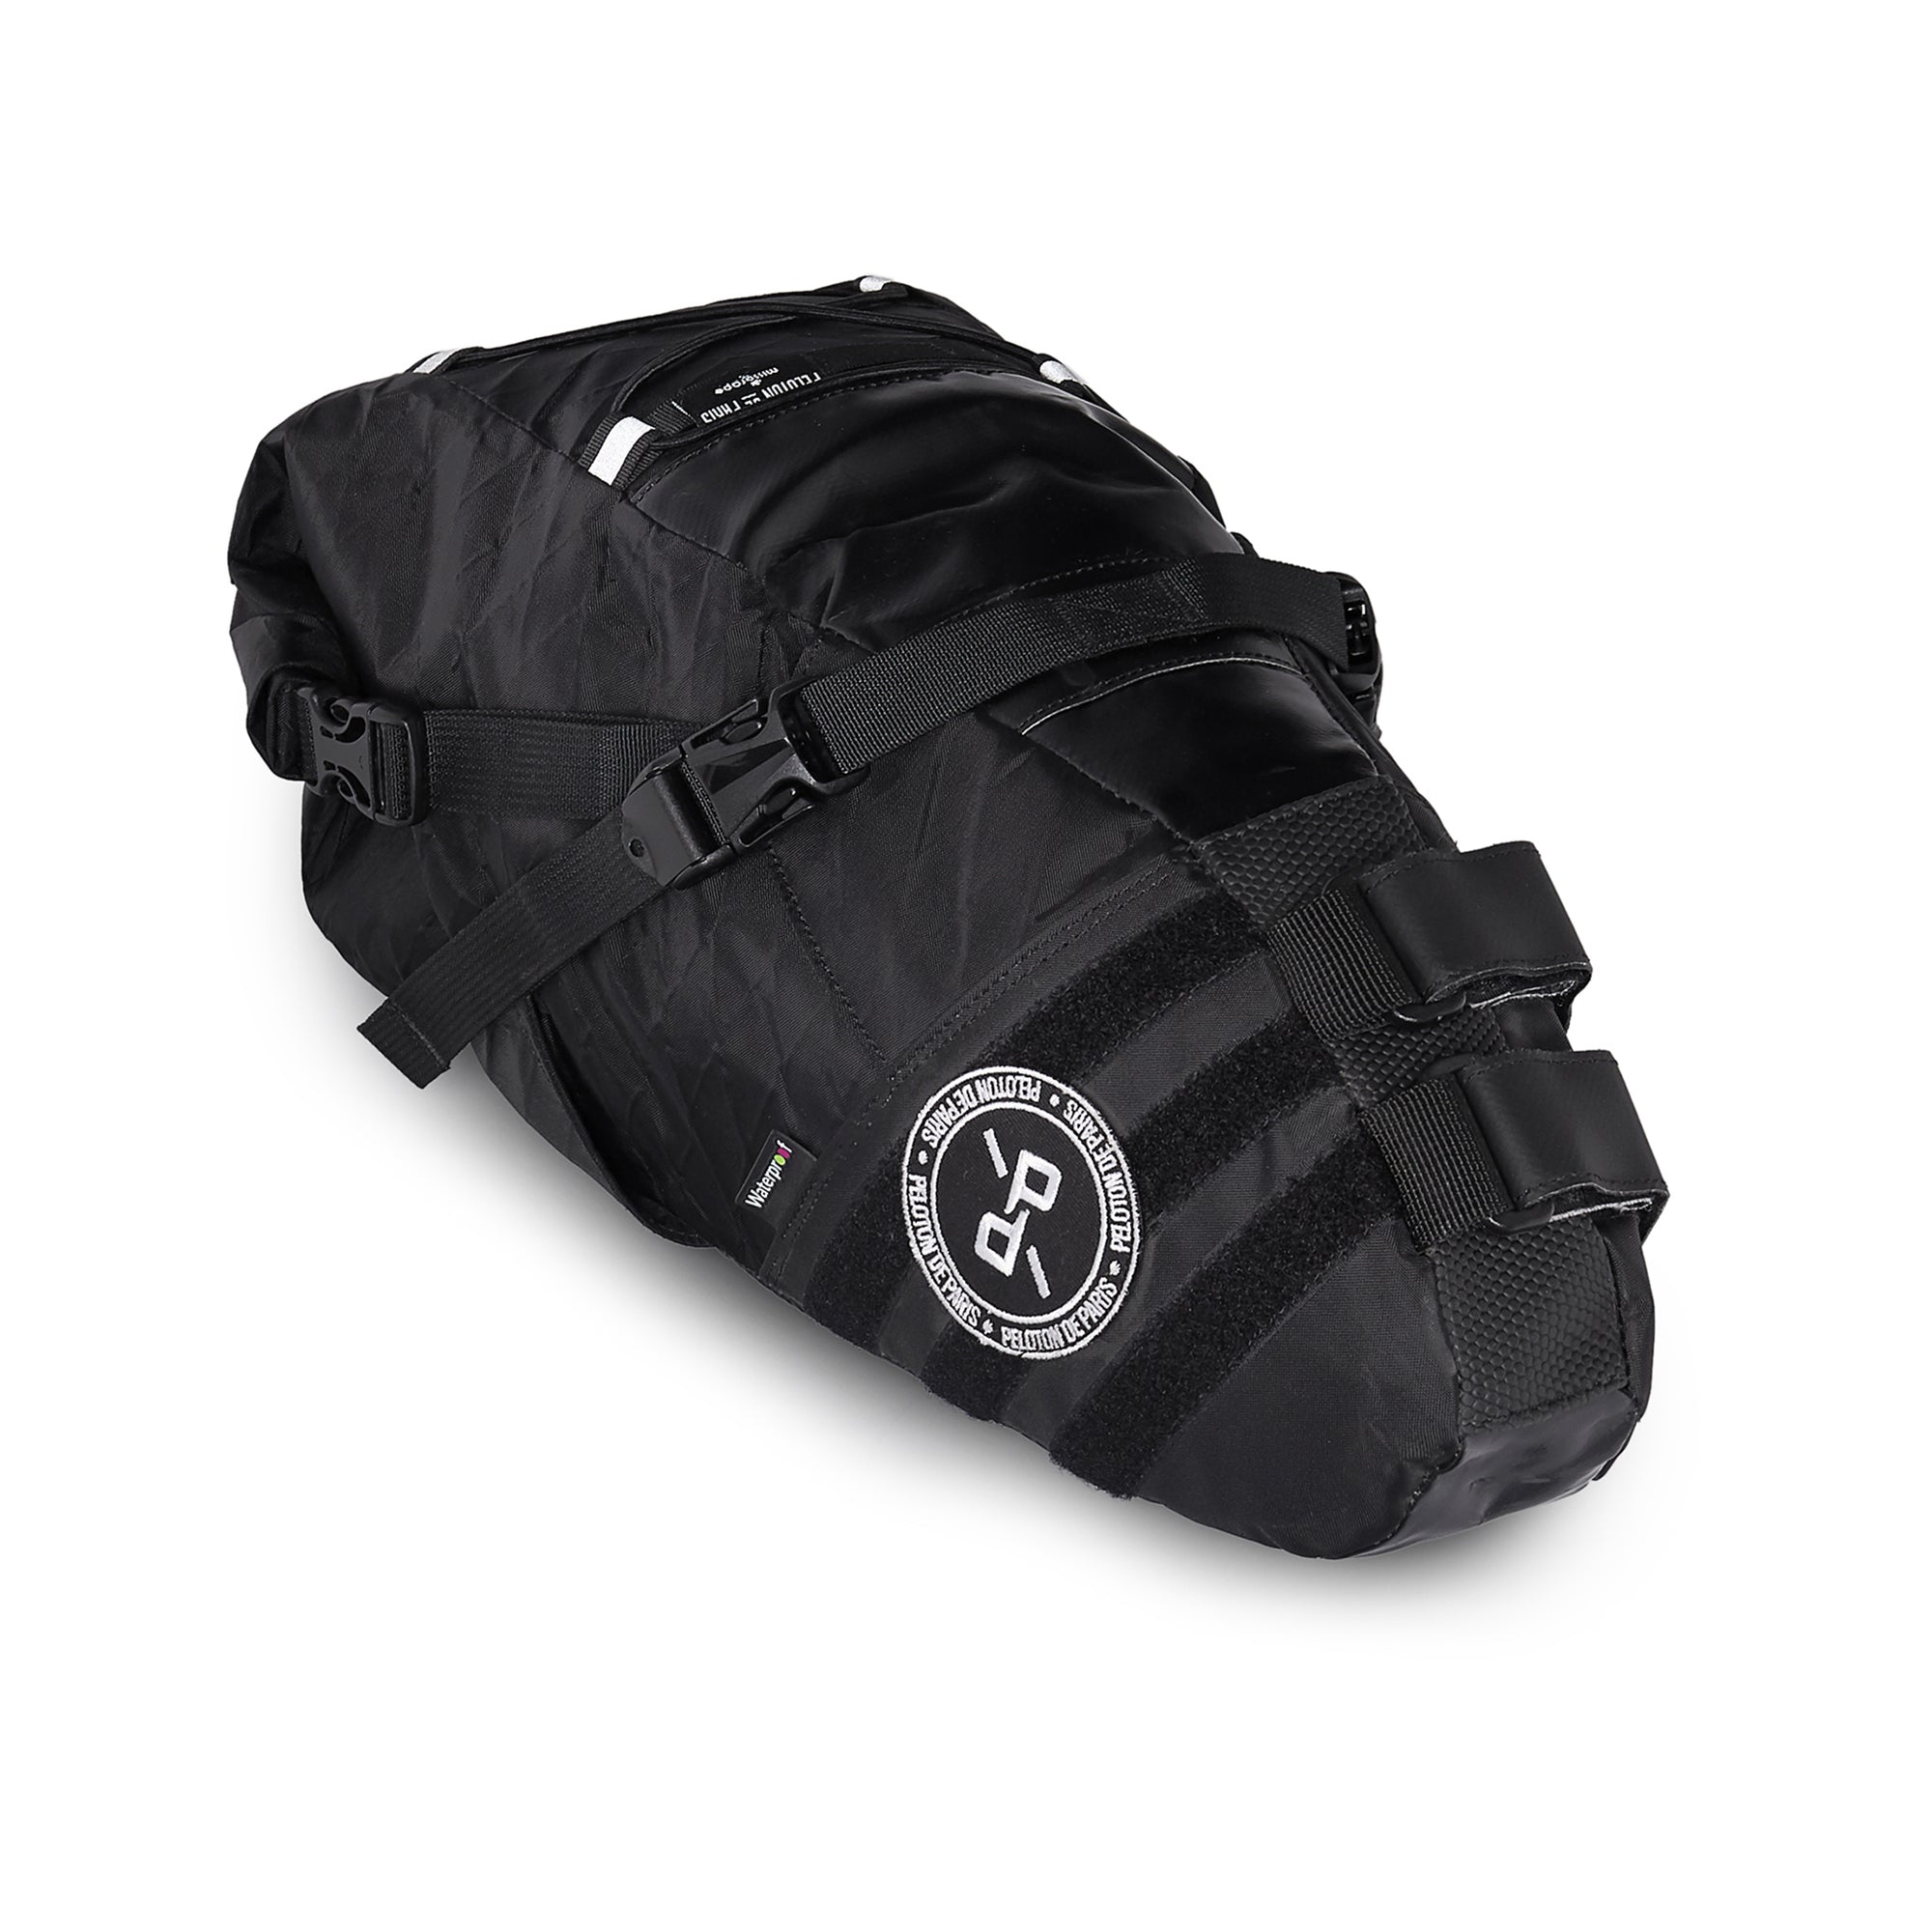 Saddle Bag 13 L Black